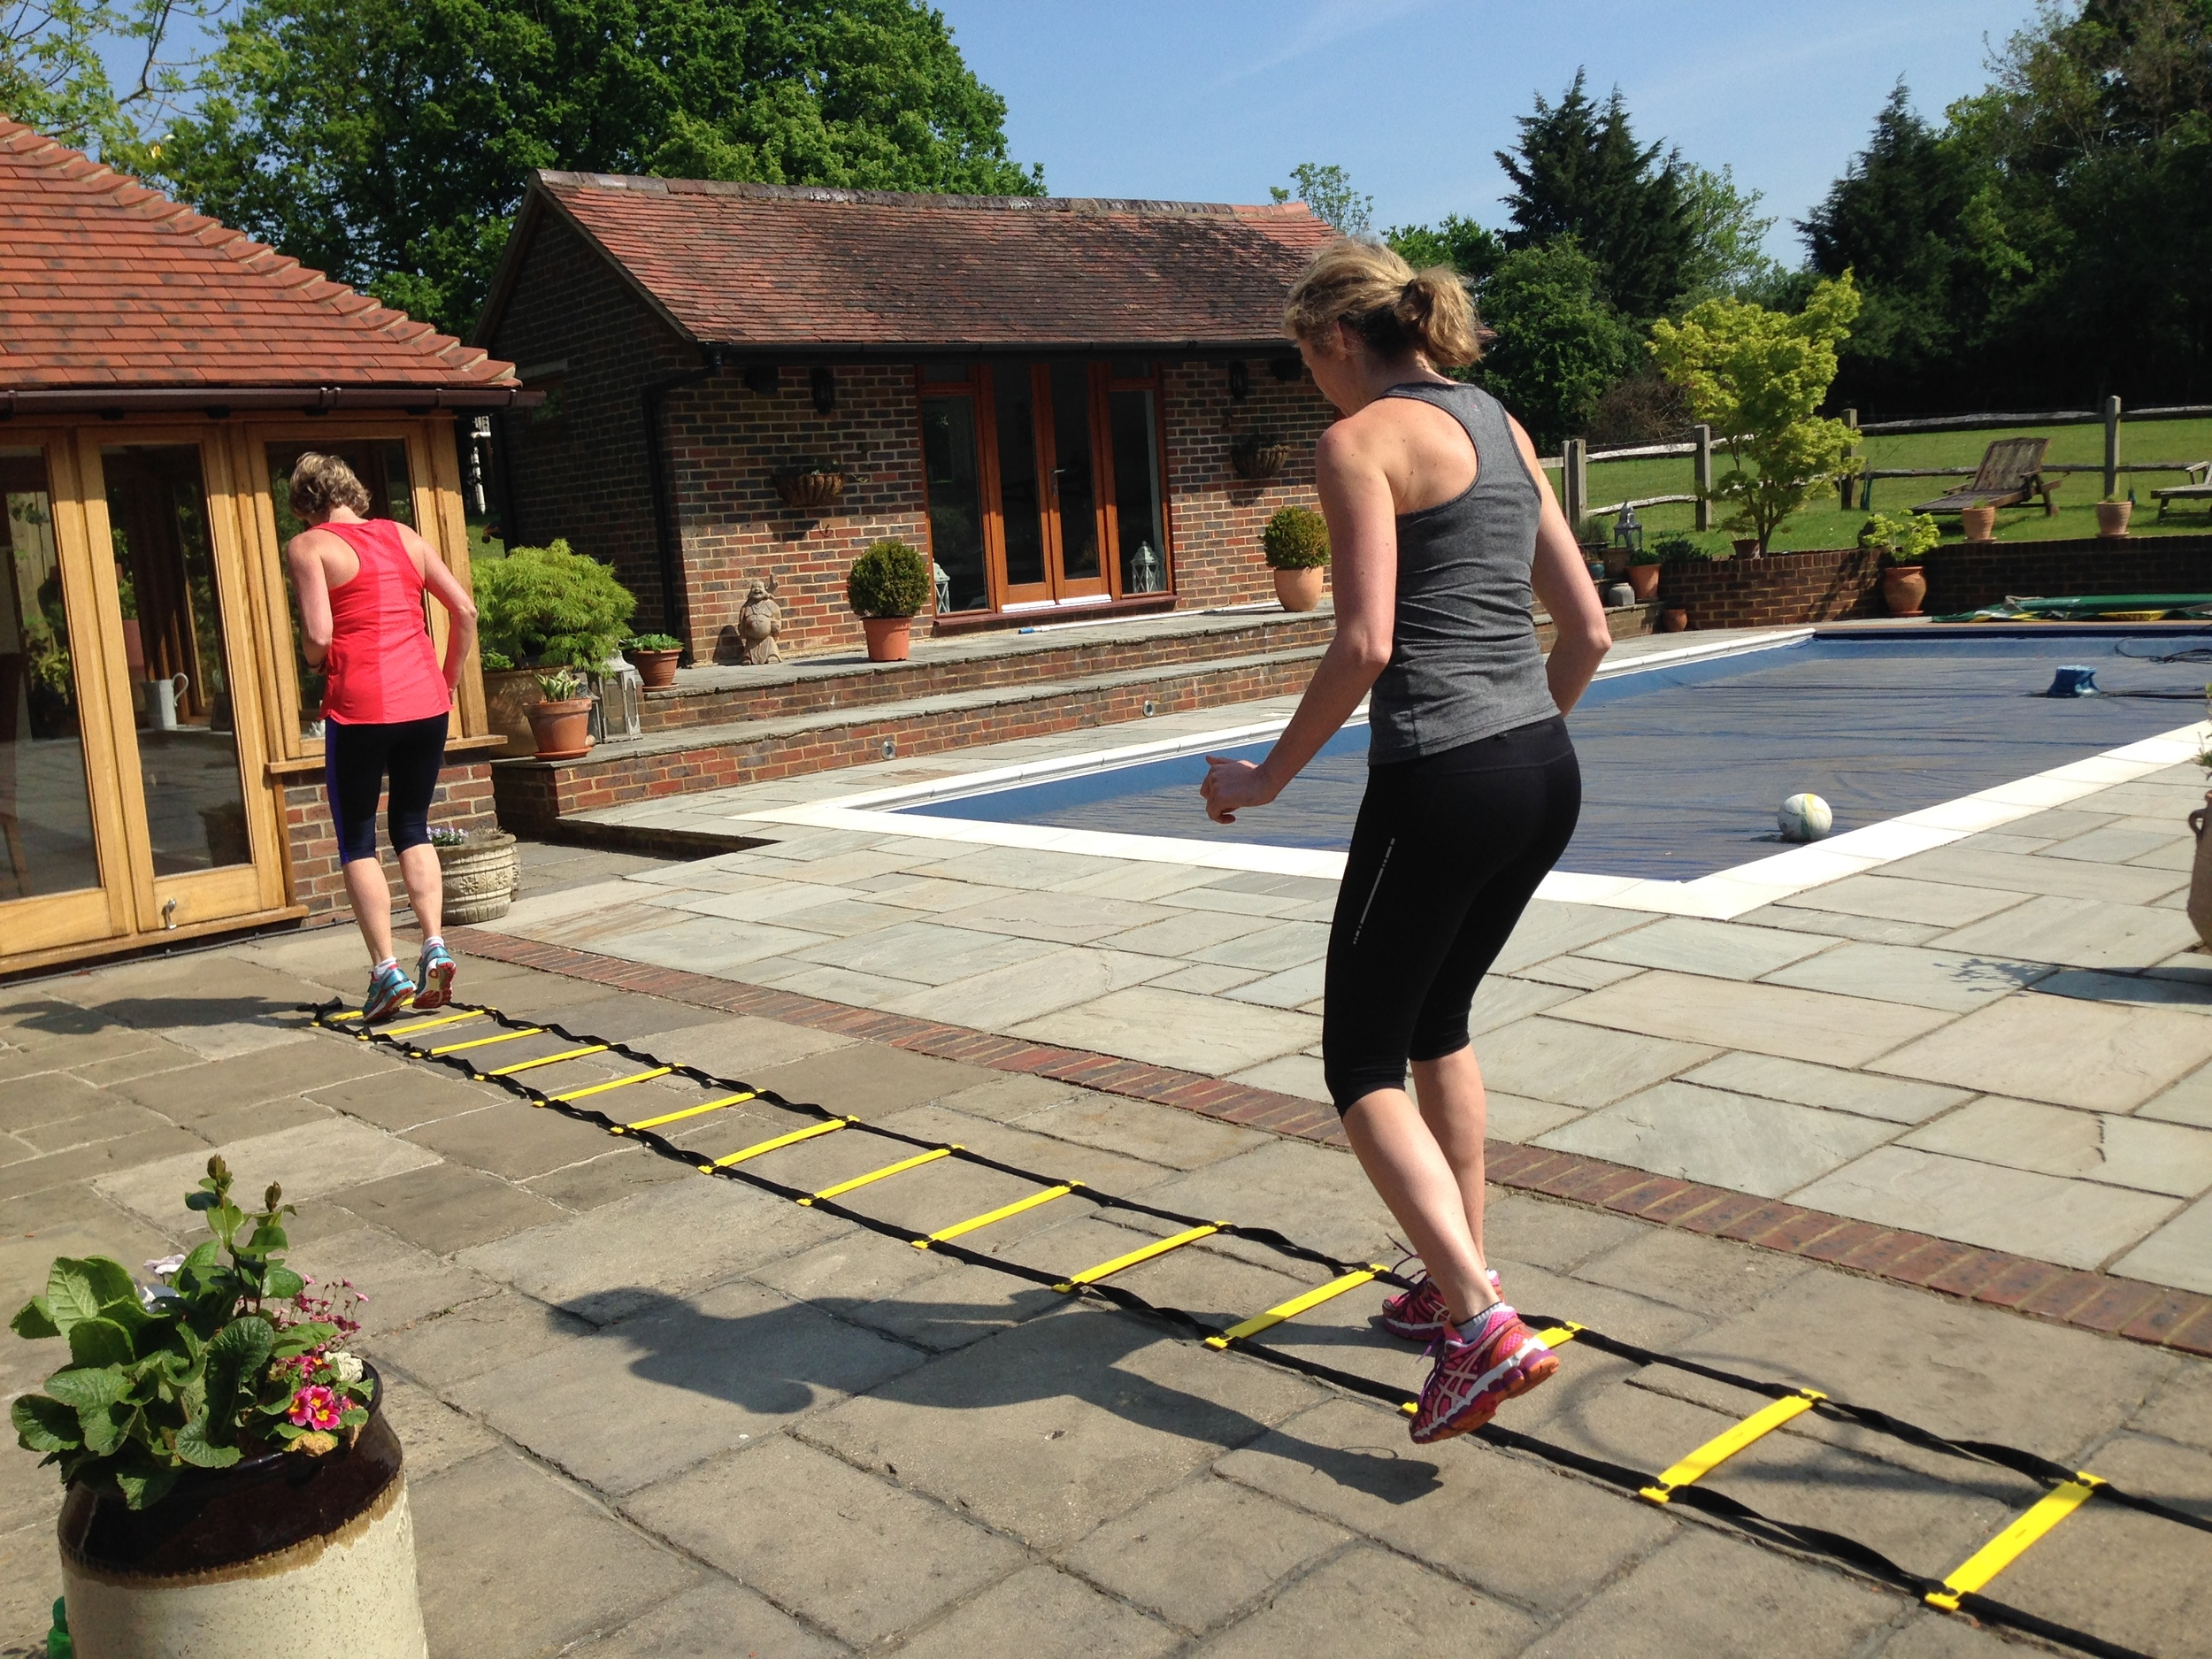 JO, louise and Sara (Group training), ANSTY, west SUSSEX